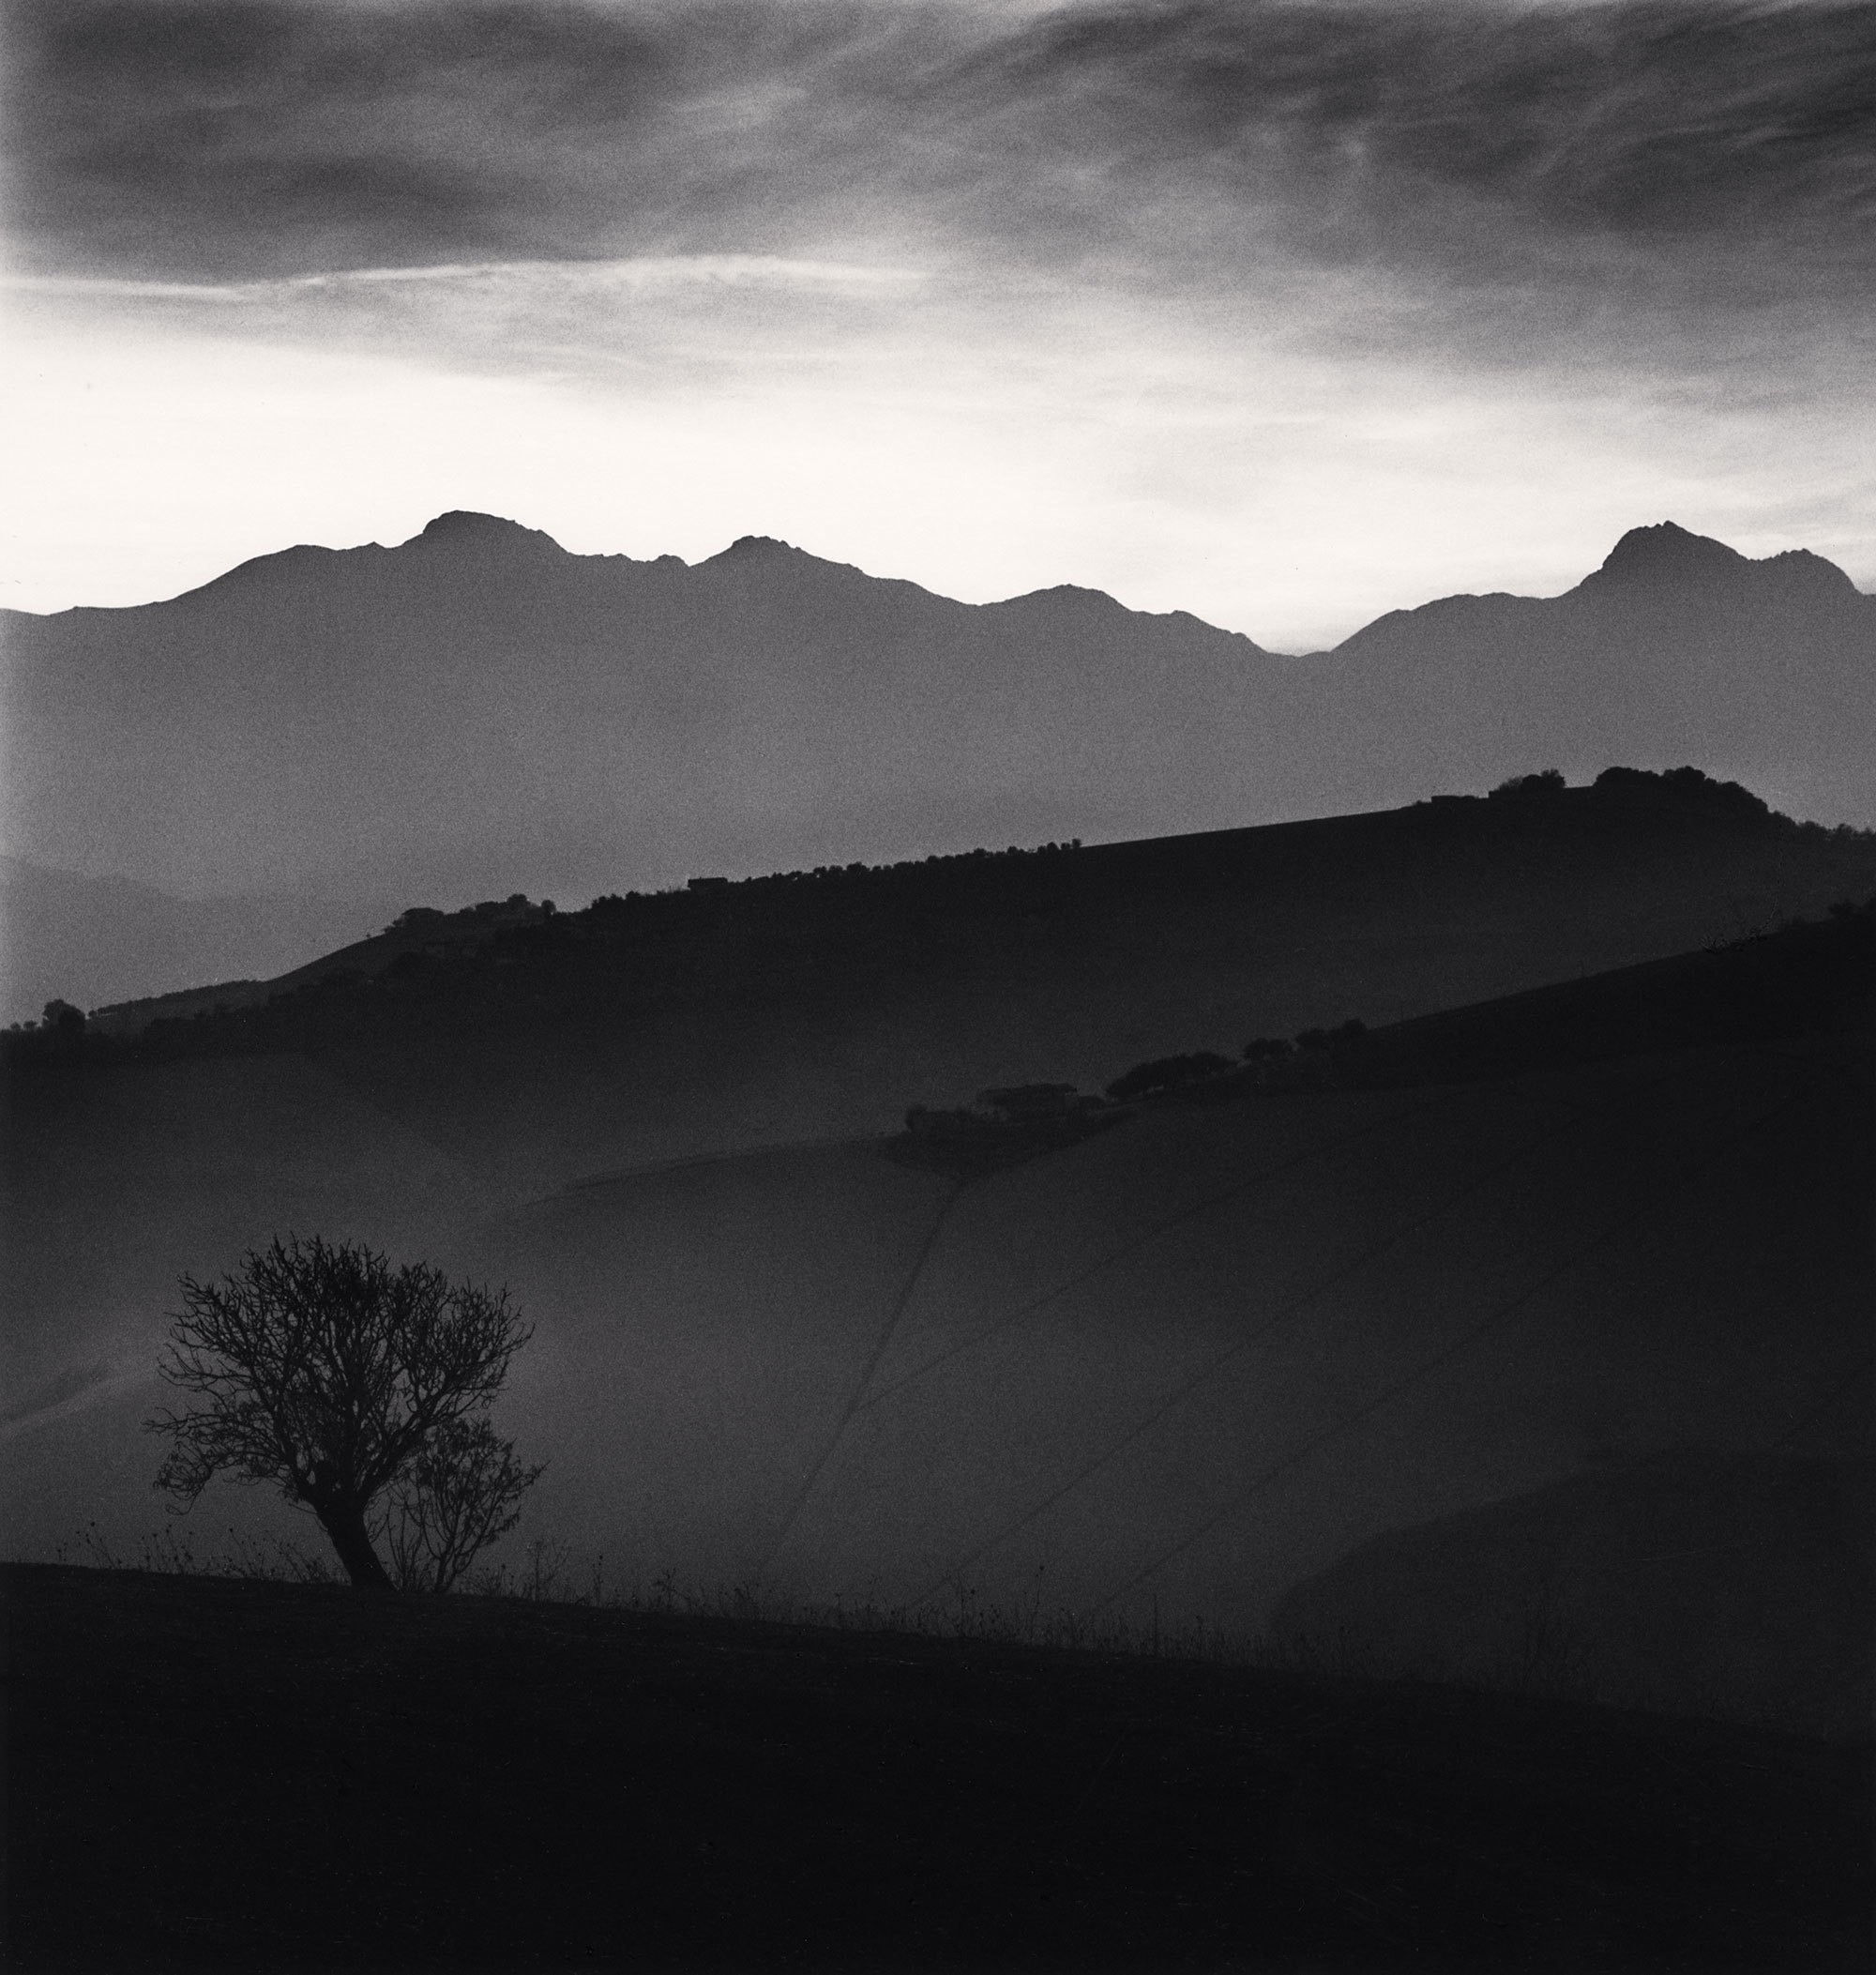 Tree and Gran Sasso mountain, Castilenti (Teramo), Abruzzo, 2015. - (Michael Kenna)